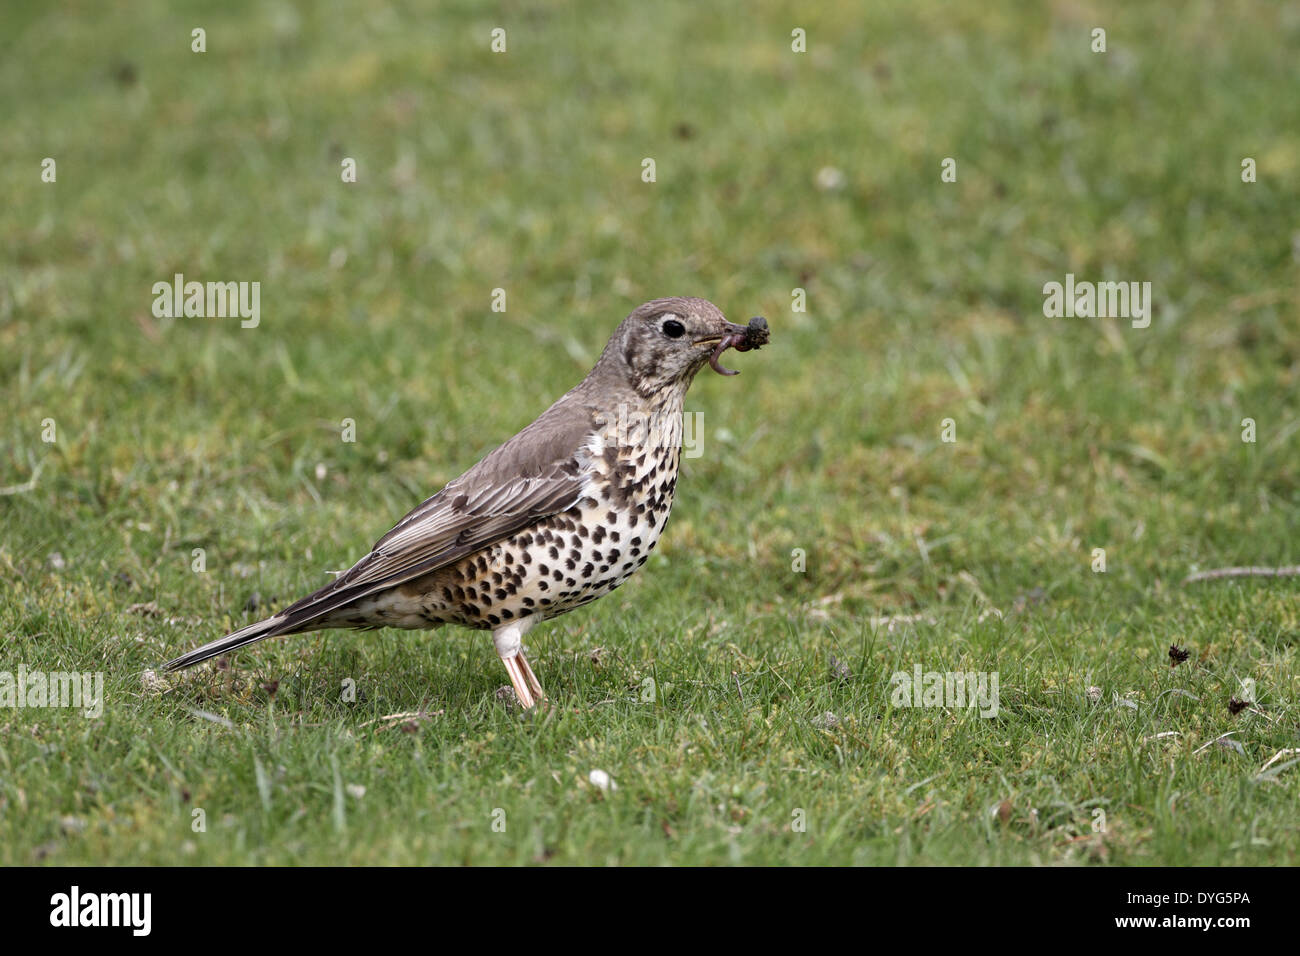 Mistle Thrush, Turdus viscivorus, feeding on worms - Stock Image